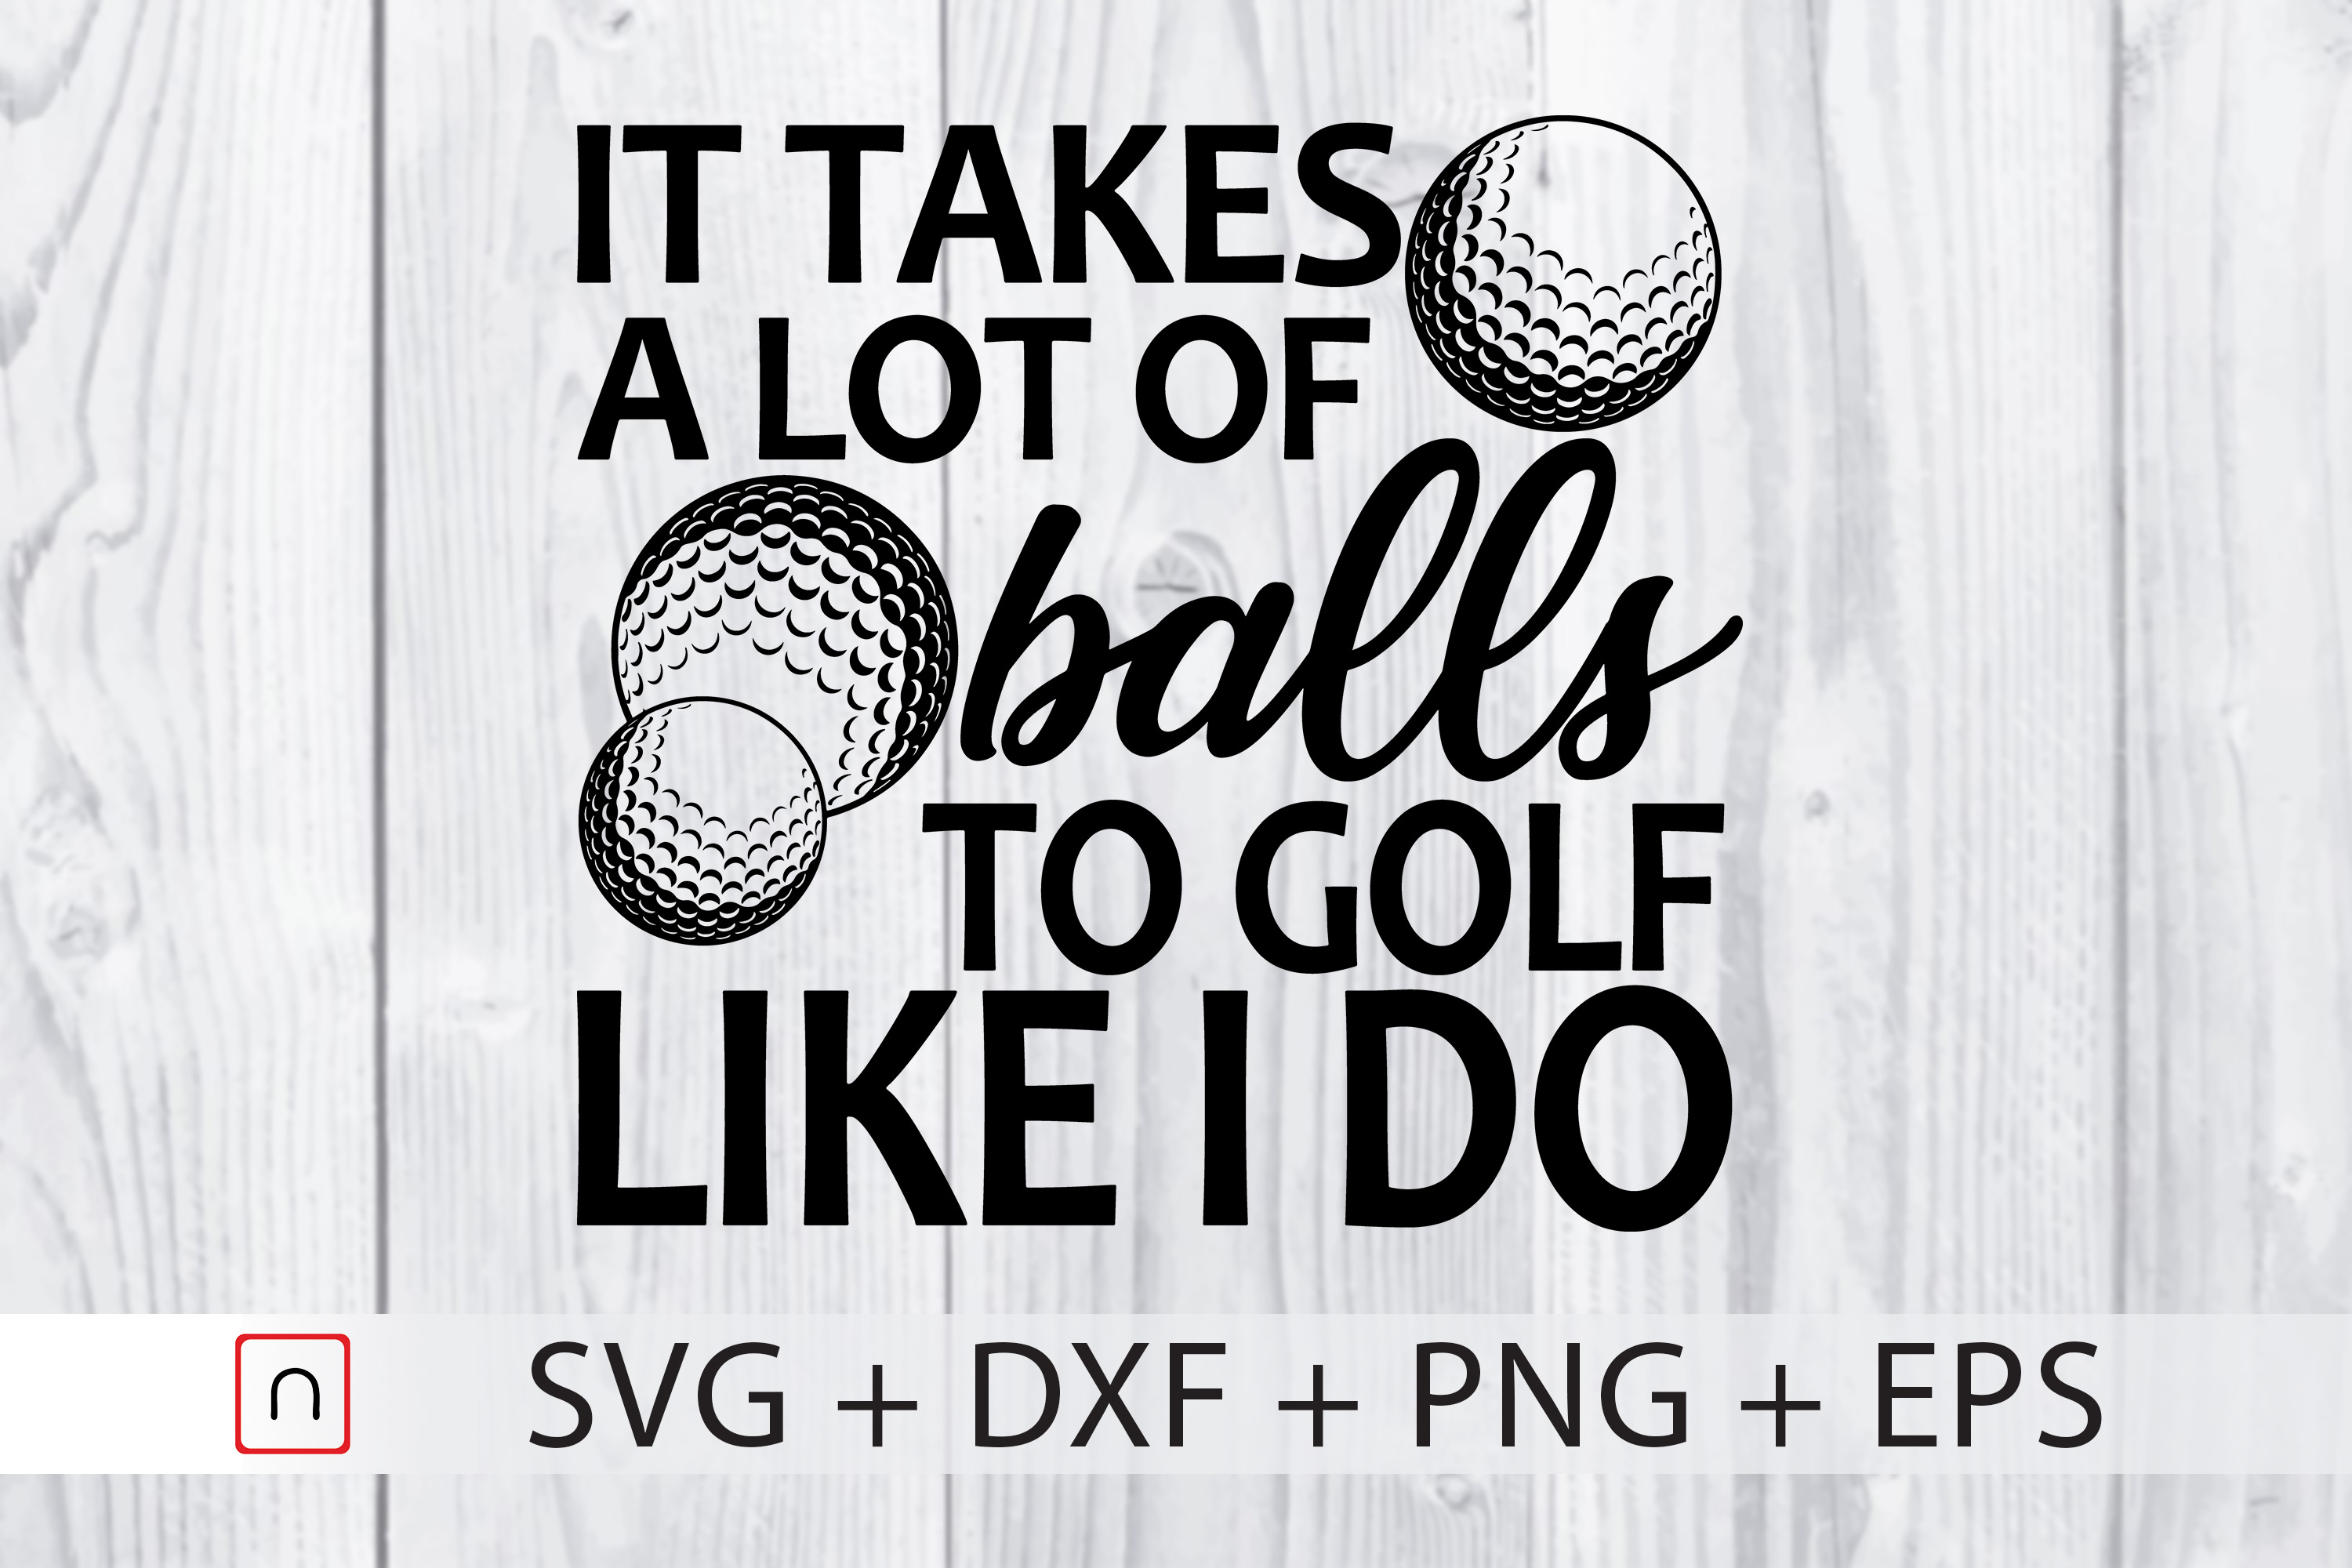 Download Free Golf Takes A Lot Of Balls Graphic By Novalia Creative Fabrica for Cricut Explore, Silhouette and other cutting machines.